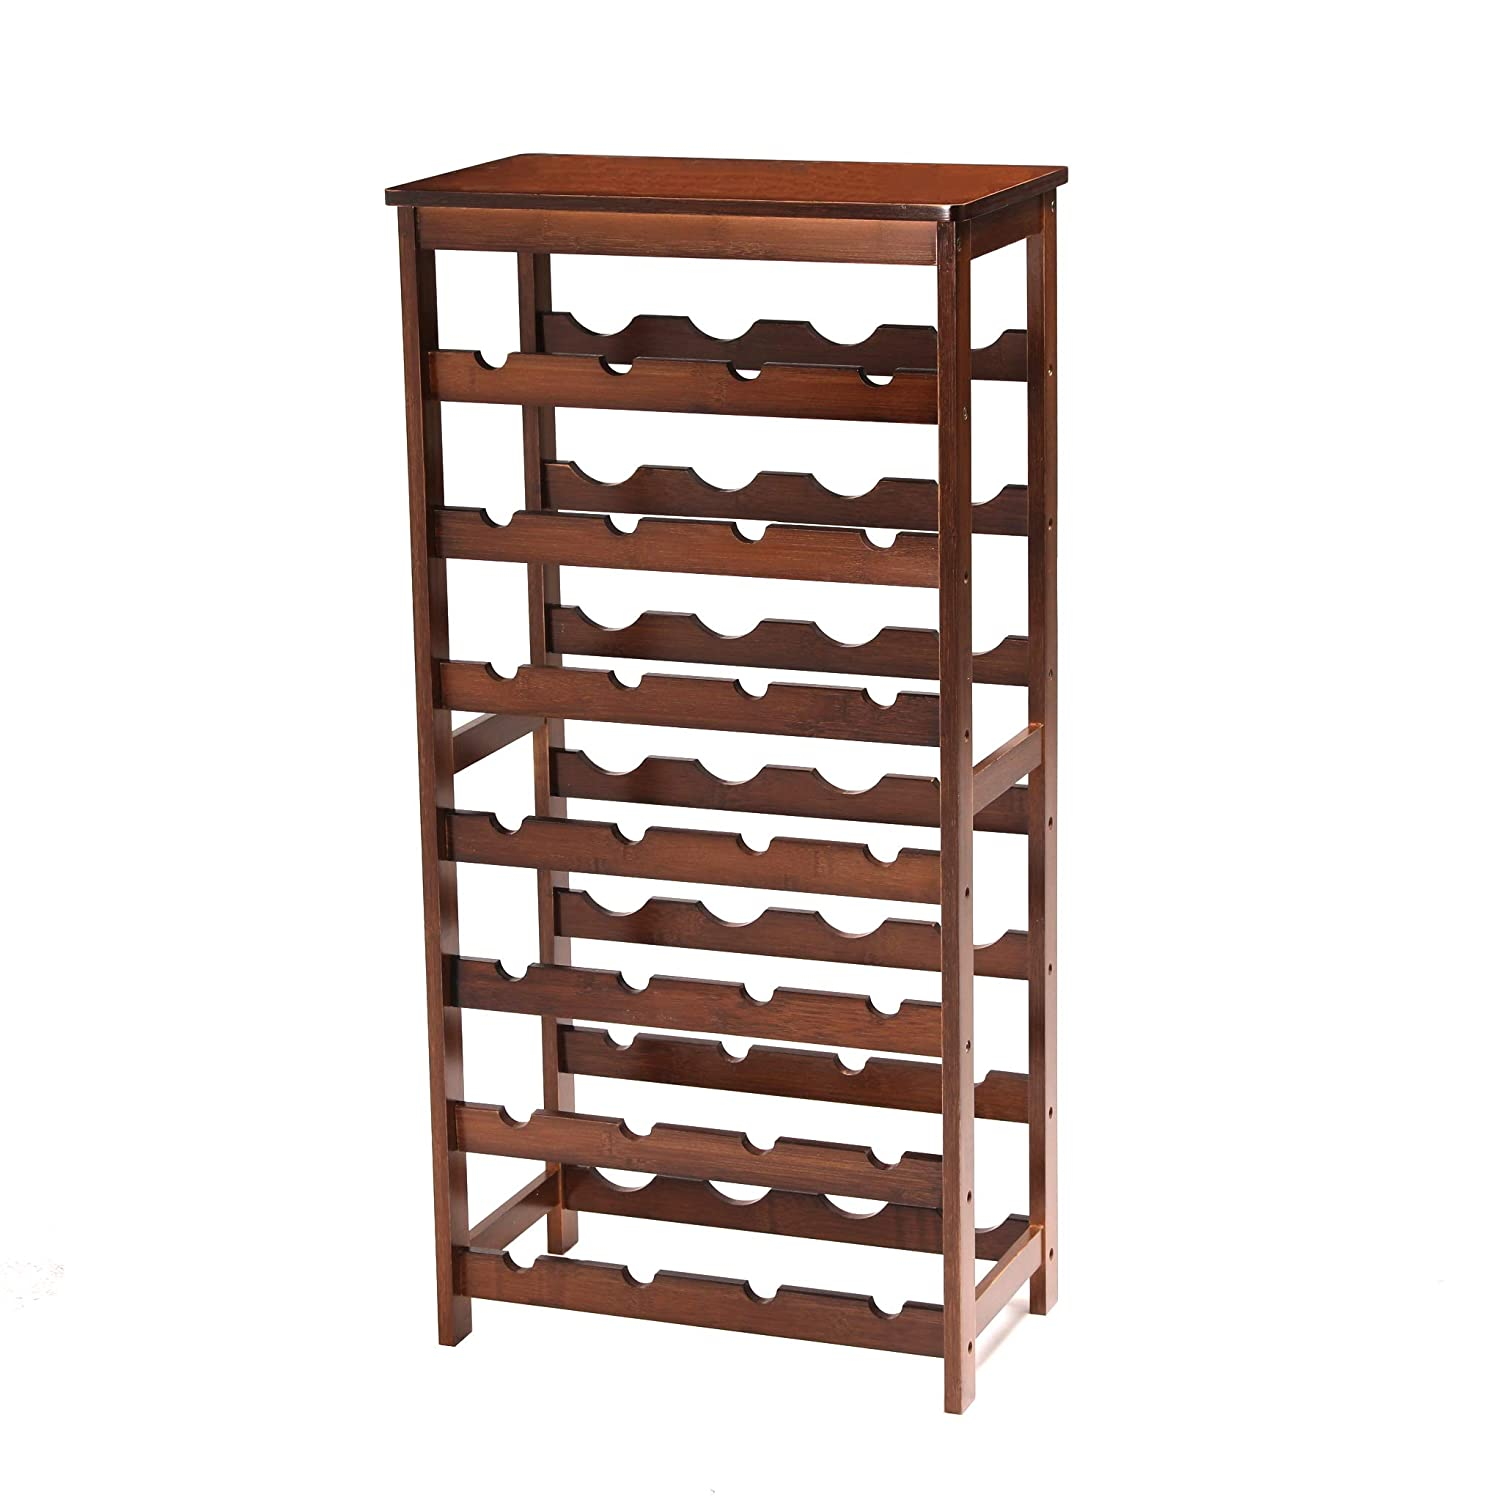 UNICOO Bamboo Wine Rack, 7 Tier Free Standing Wine Storage Rack Wine Display Shelves 28 Bottles Capacity Storage Standing Table, Wobble Free for Home Kitchen, Antique Brown